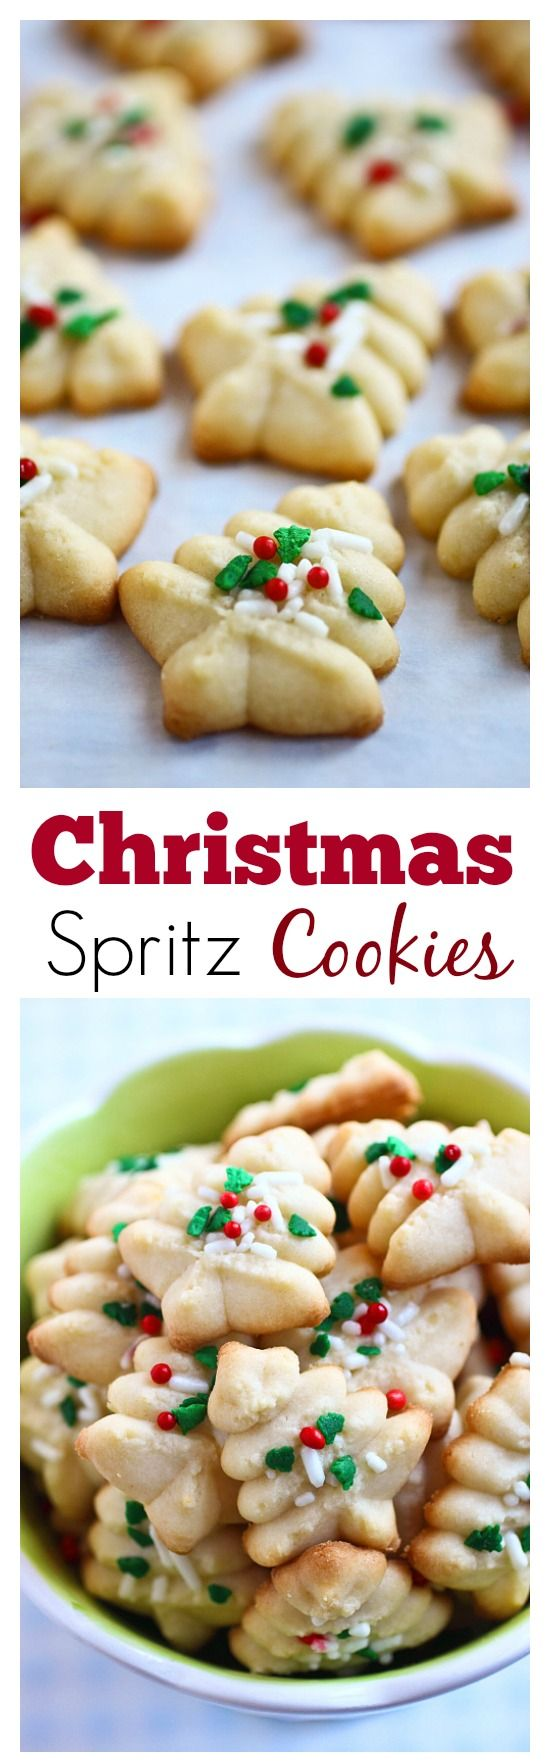 Spritz Cookies – BEST, buttery, melt-in-your-mouth crumbliest Christmas Spritz cookies ever! Super easy recipe that anyone can bake this holiday season | rasamalaysia.com